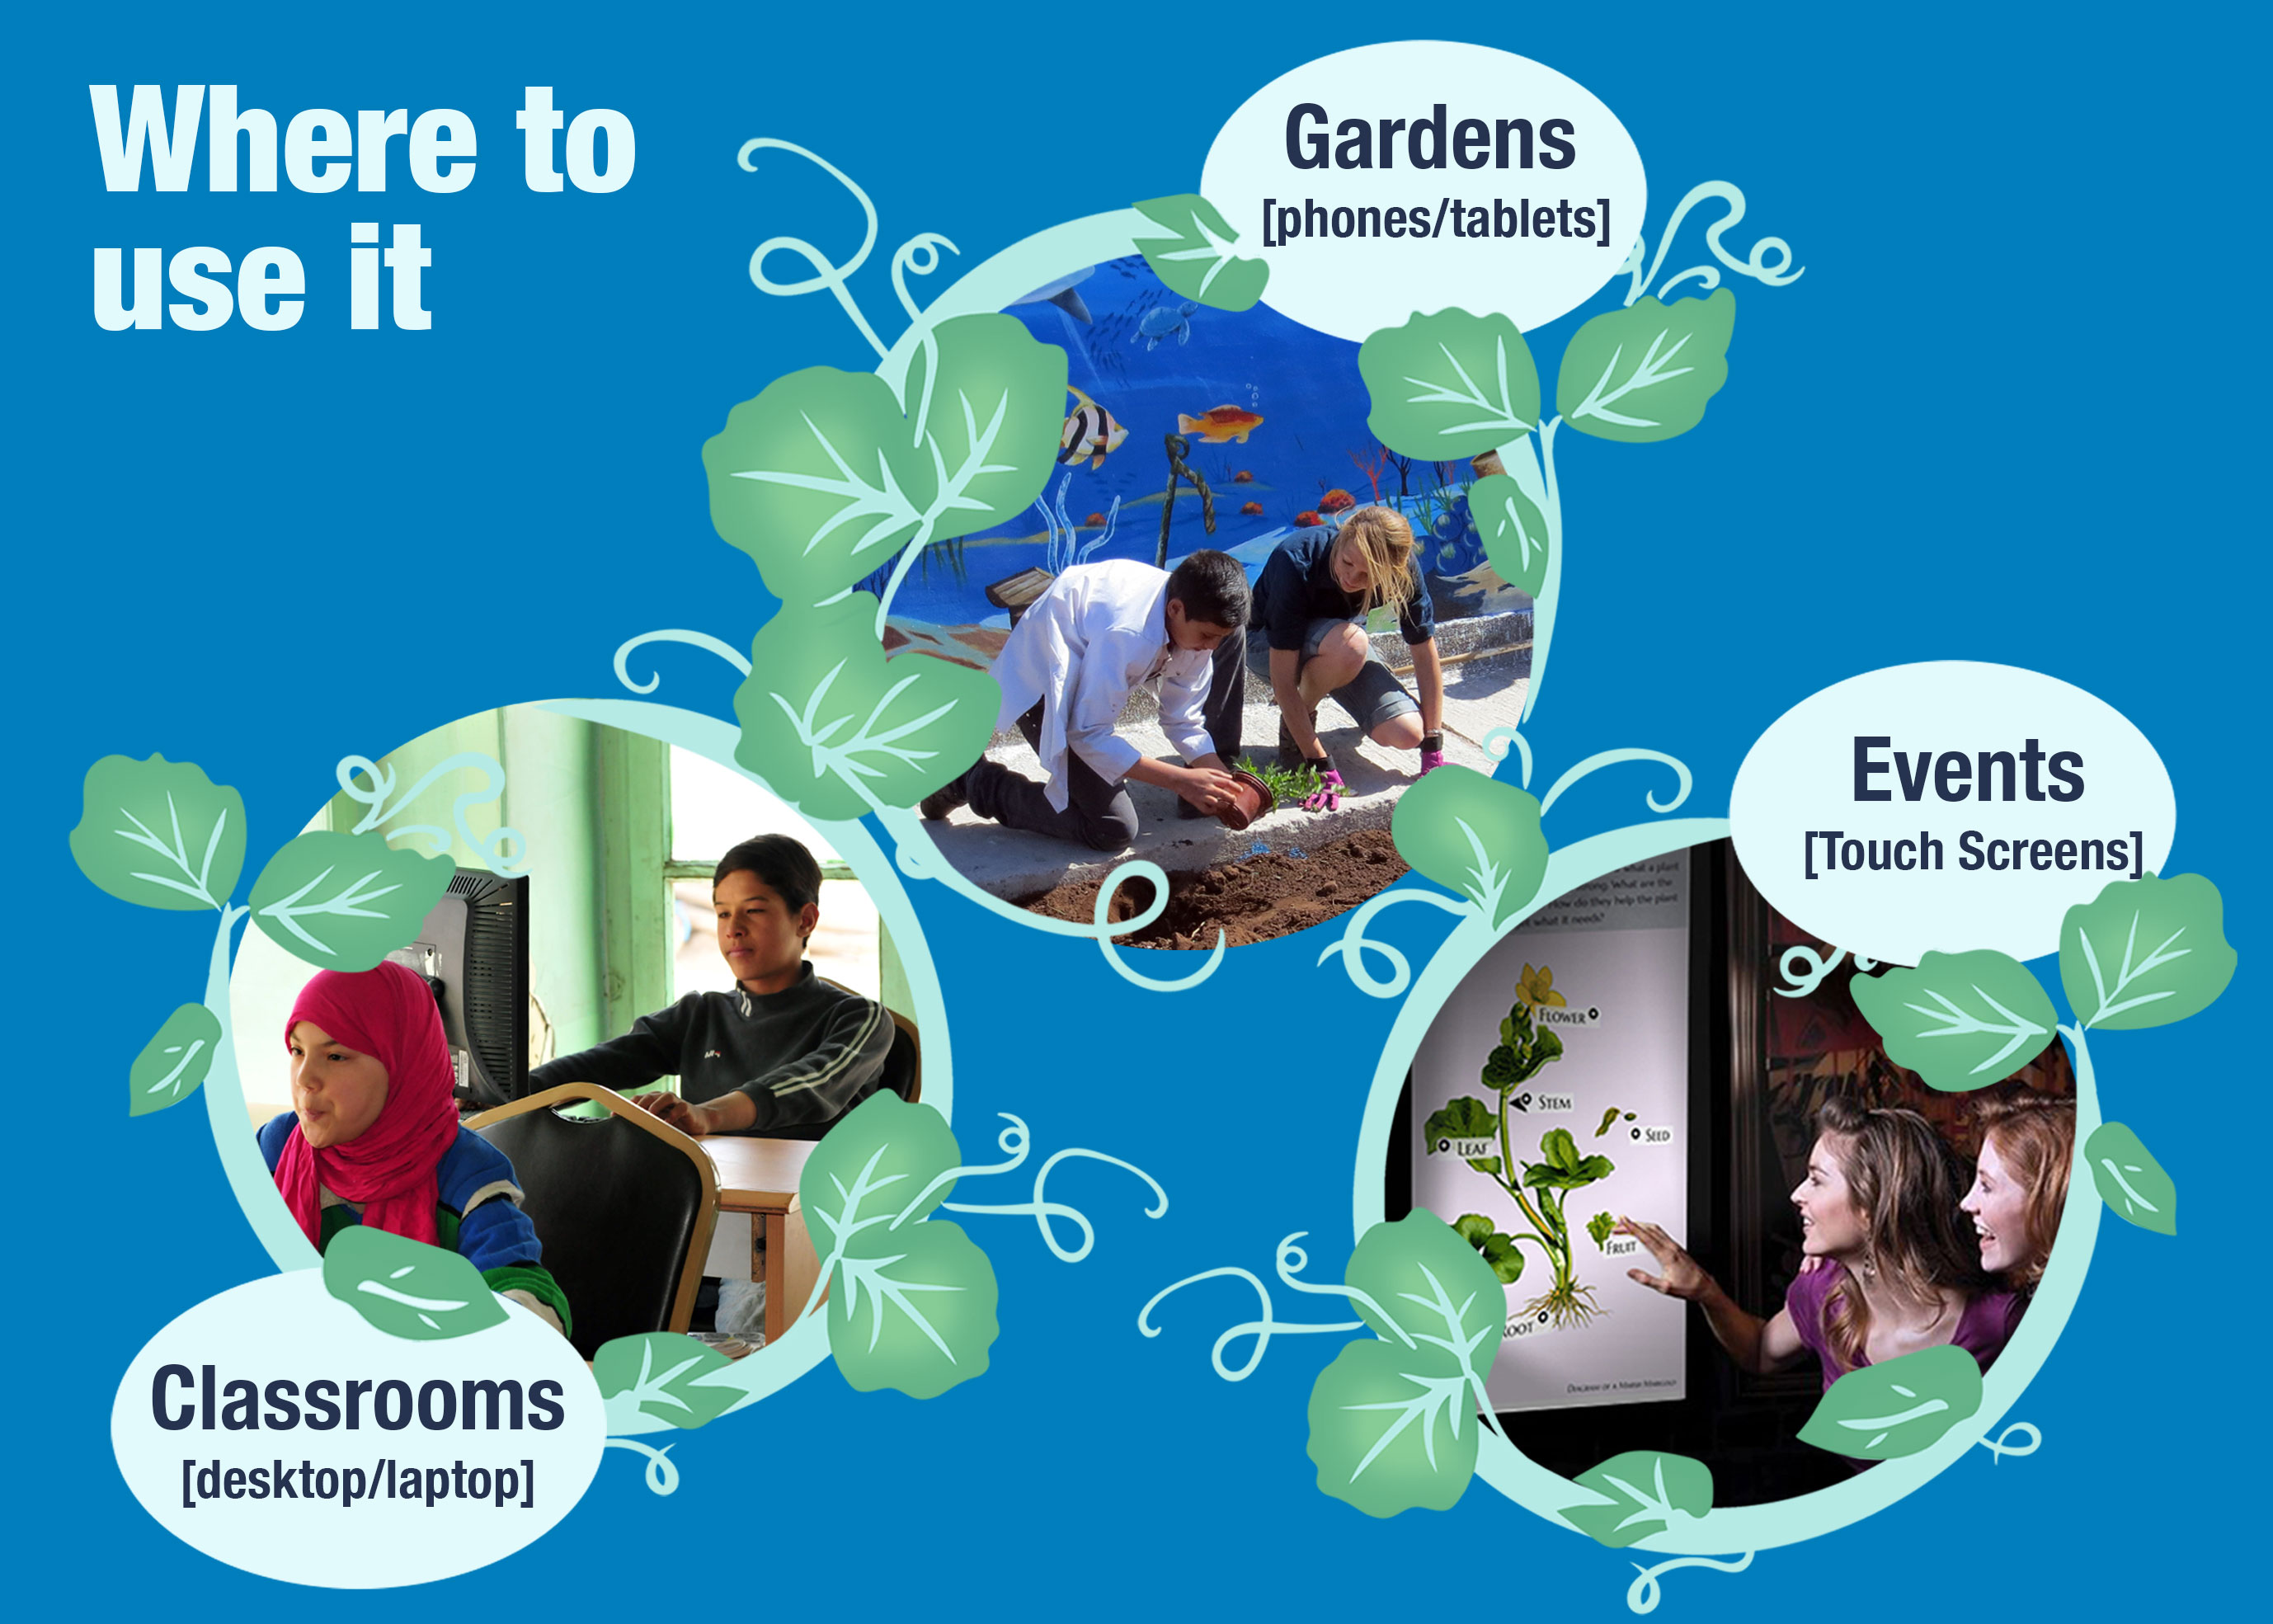 ETG - Where to Use it - Classrooms, Gardens and Events